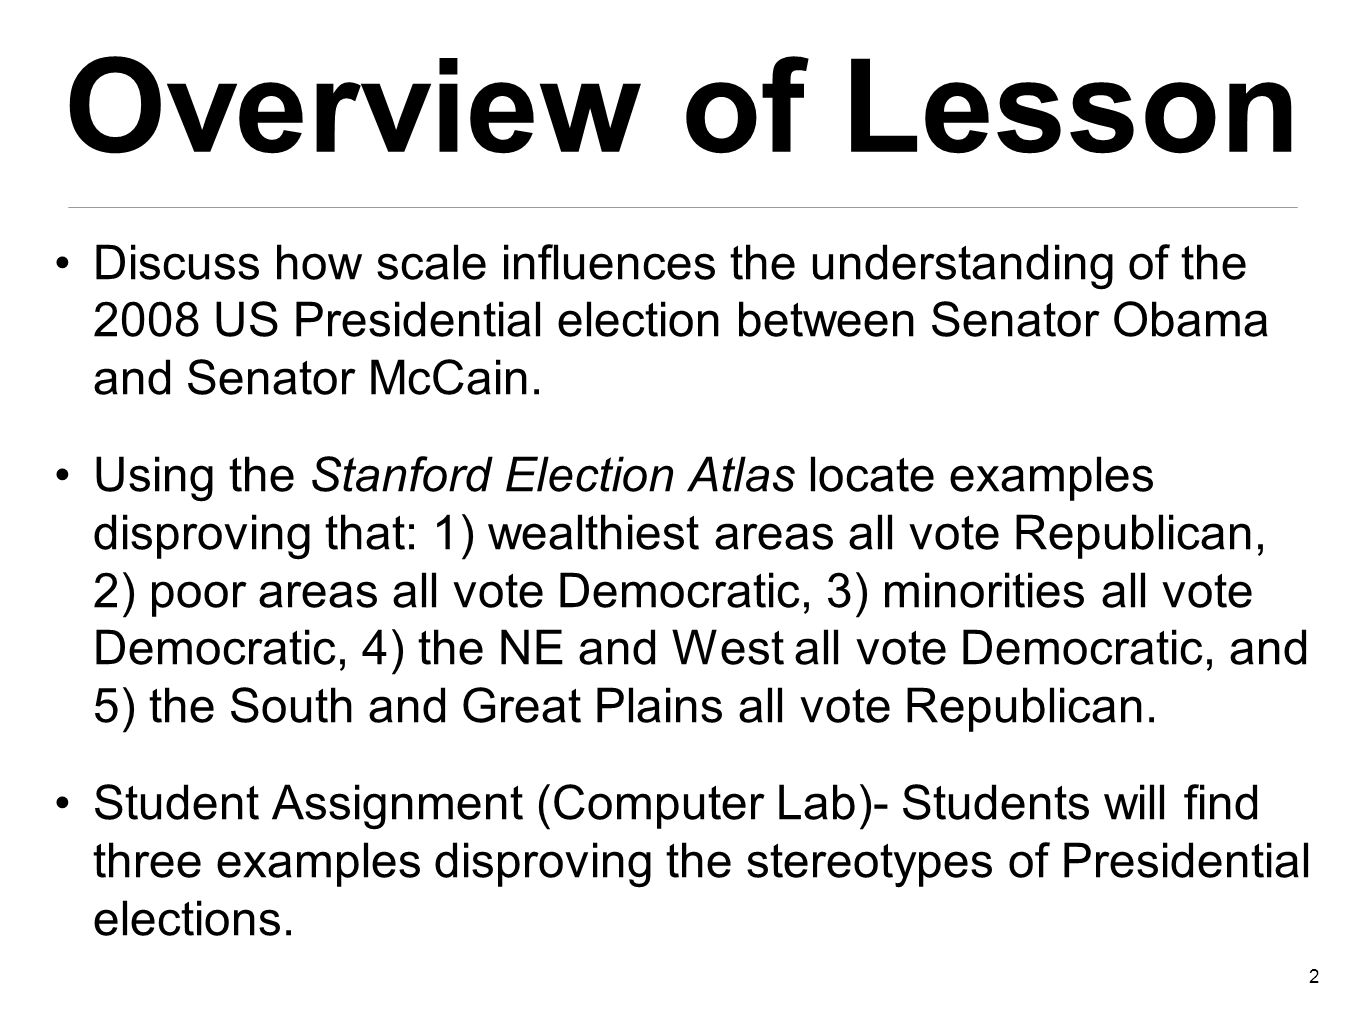 Overview of Lesson Discuss how scale influences the understanding of the 2008 US Presidential election between Senator Obama and Senator McCain.